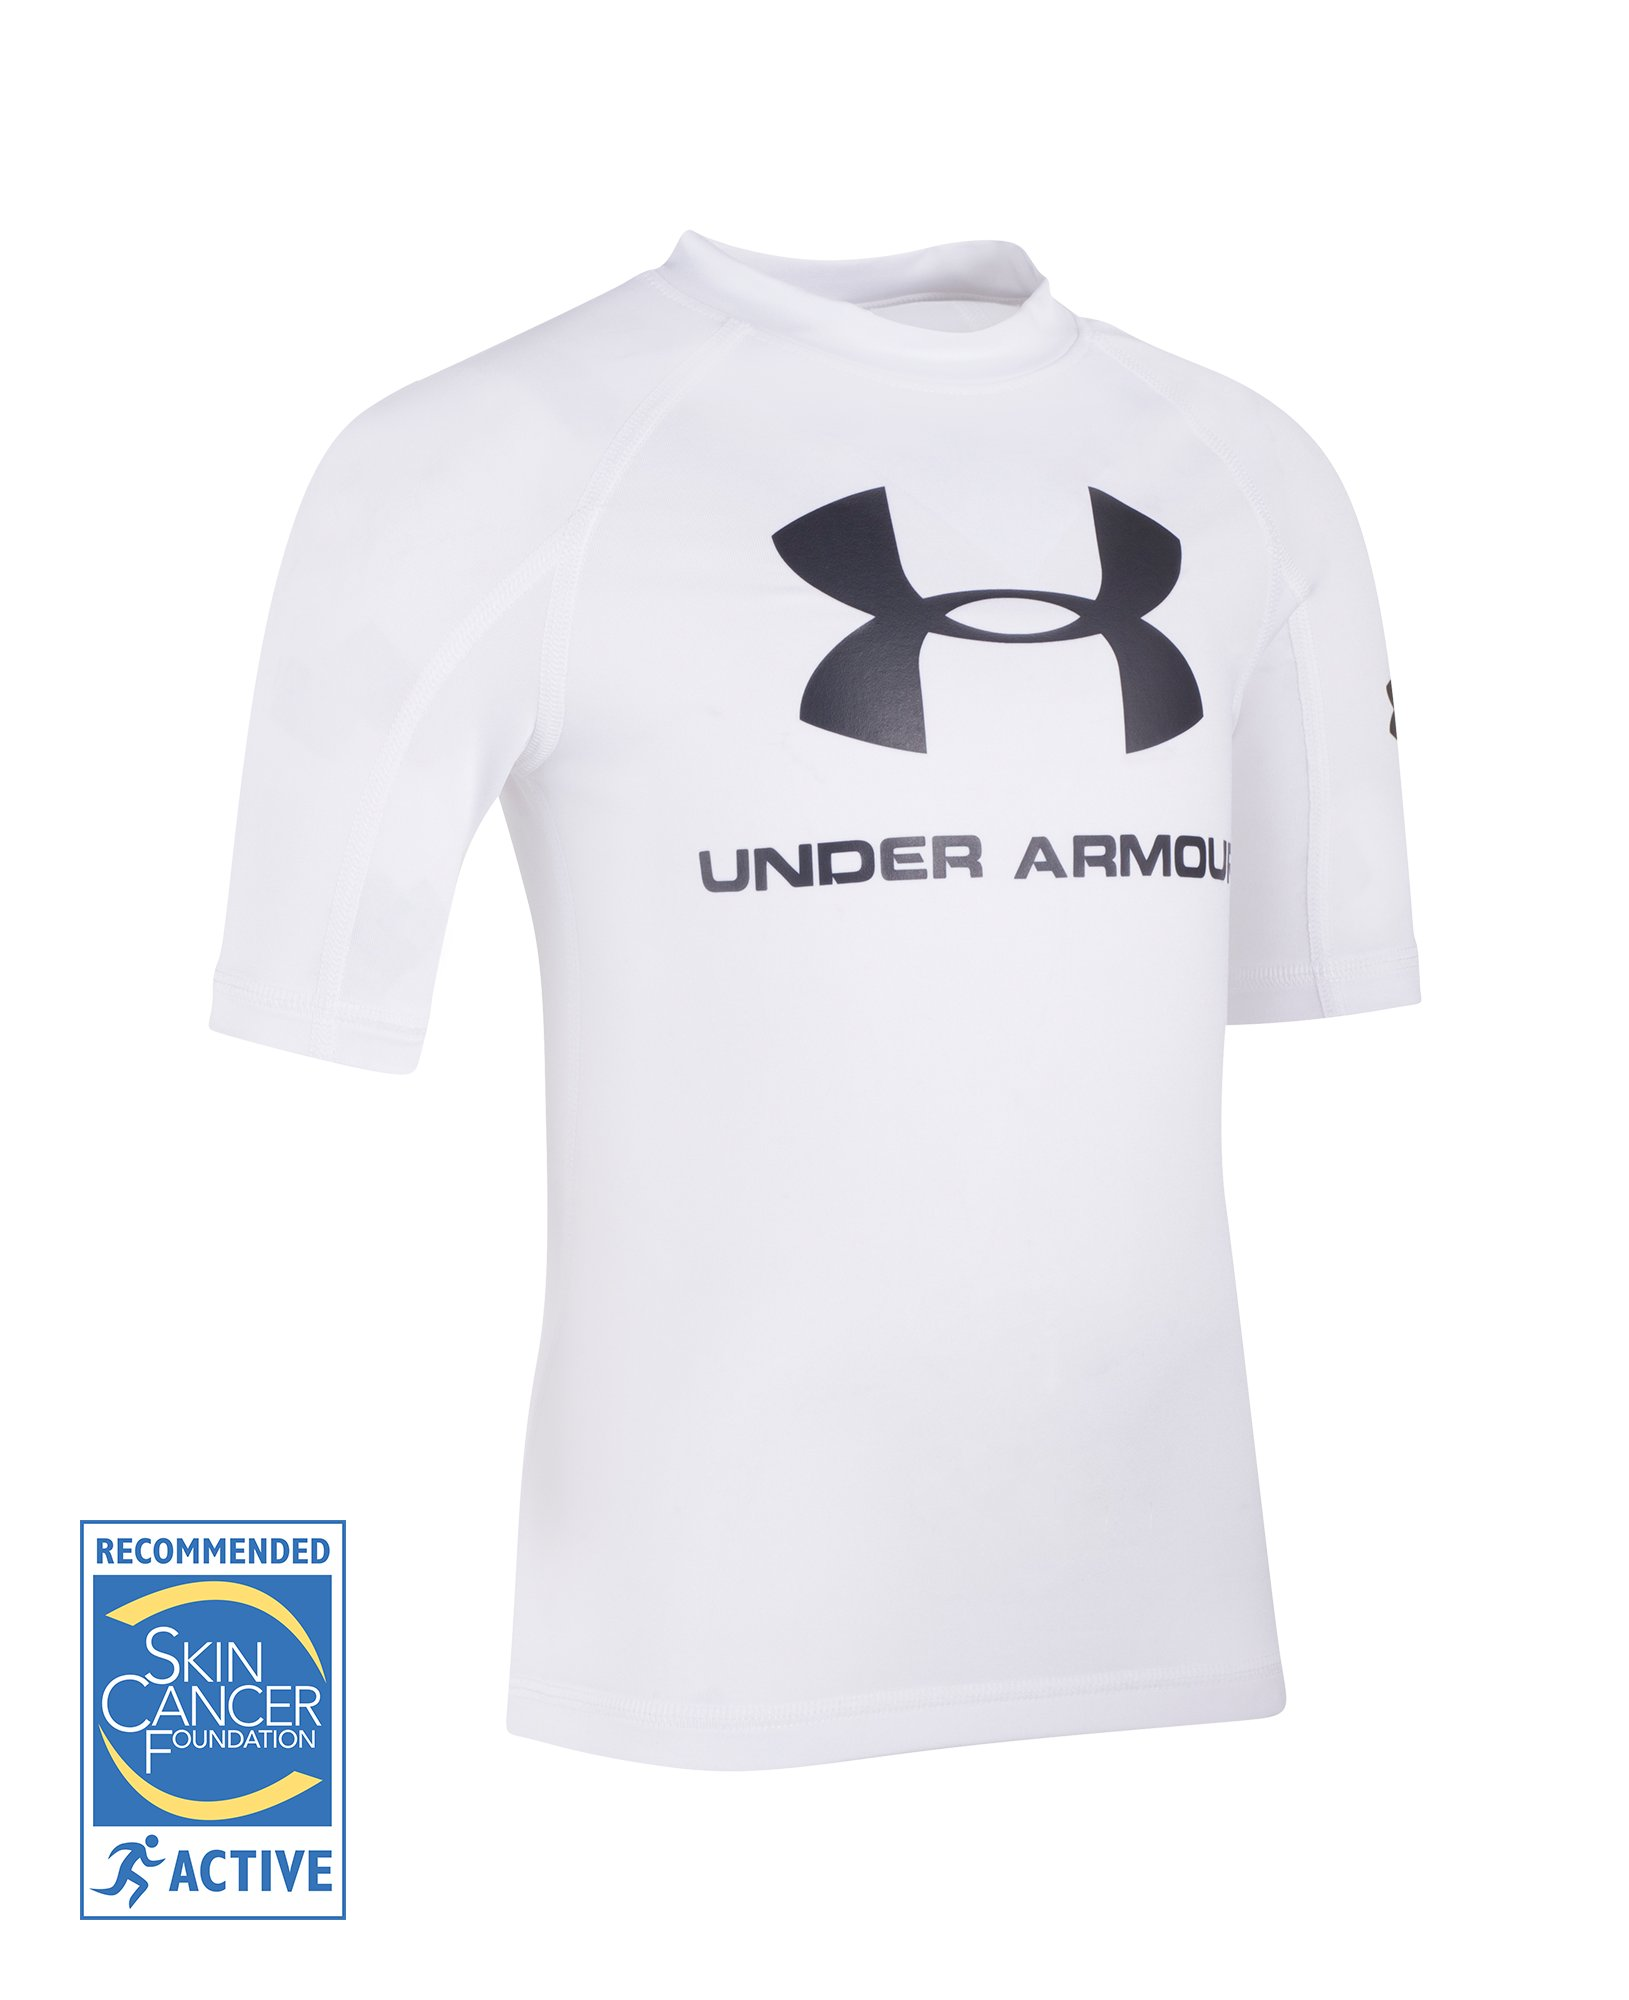 Boys' Pre-School UA Compression Rashguard Short Sleeve Shirt, White